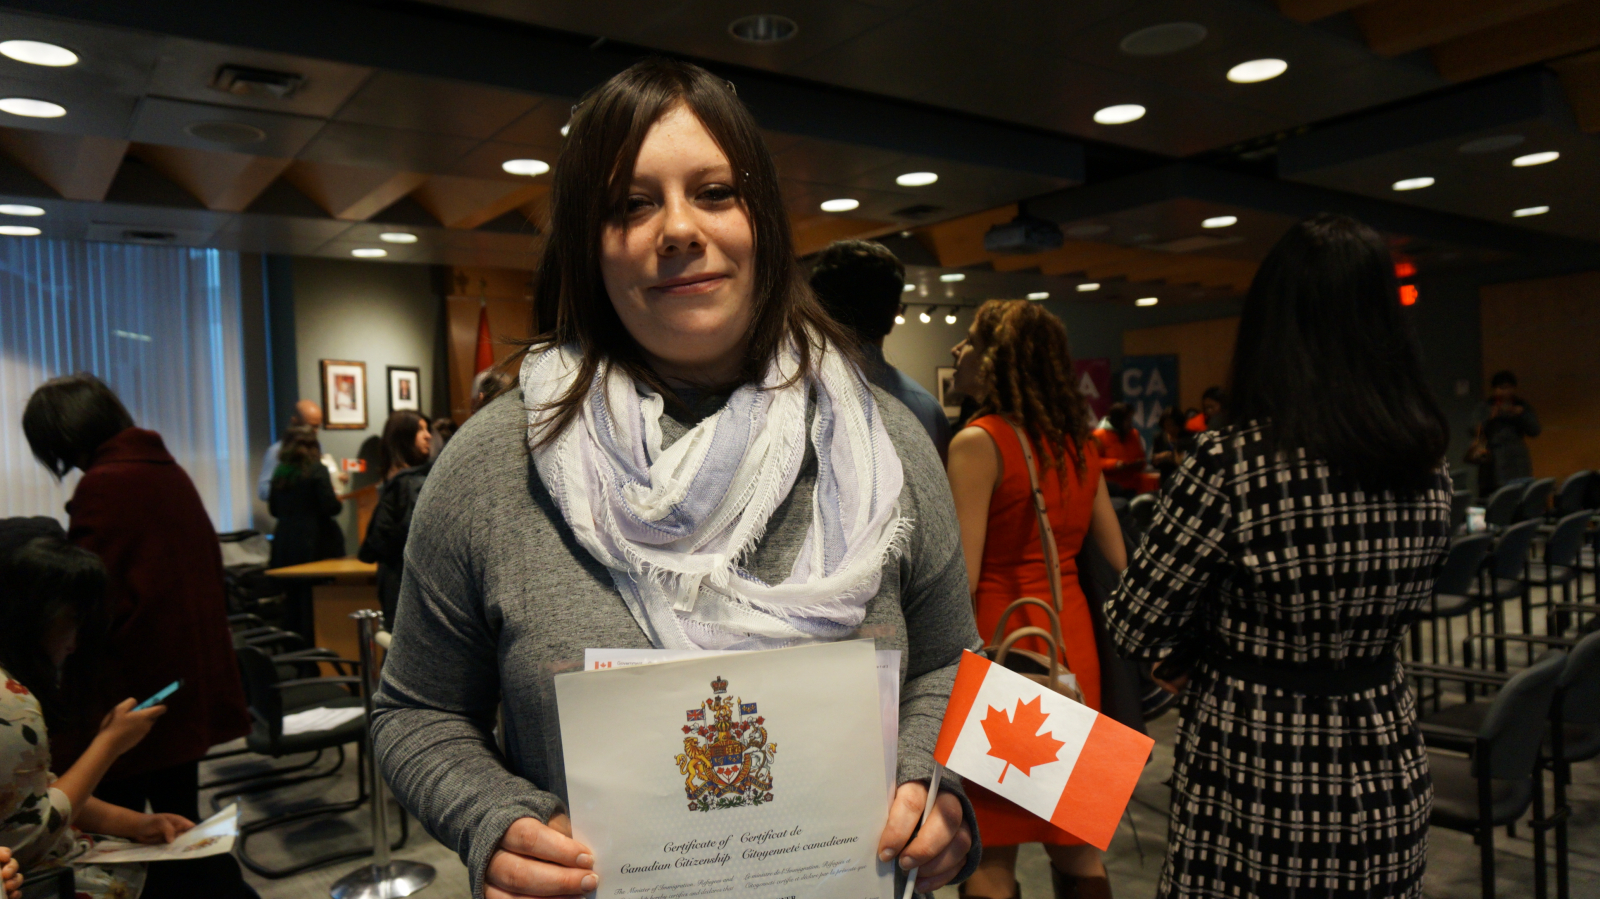 Canadian citizenship still not equal for all, due to ongoing